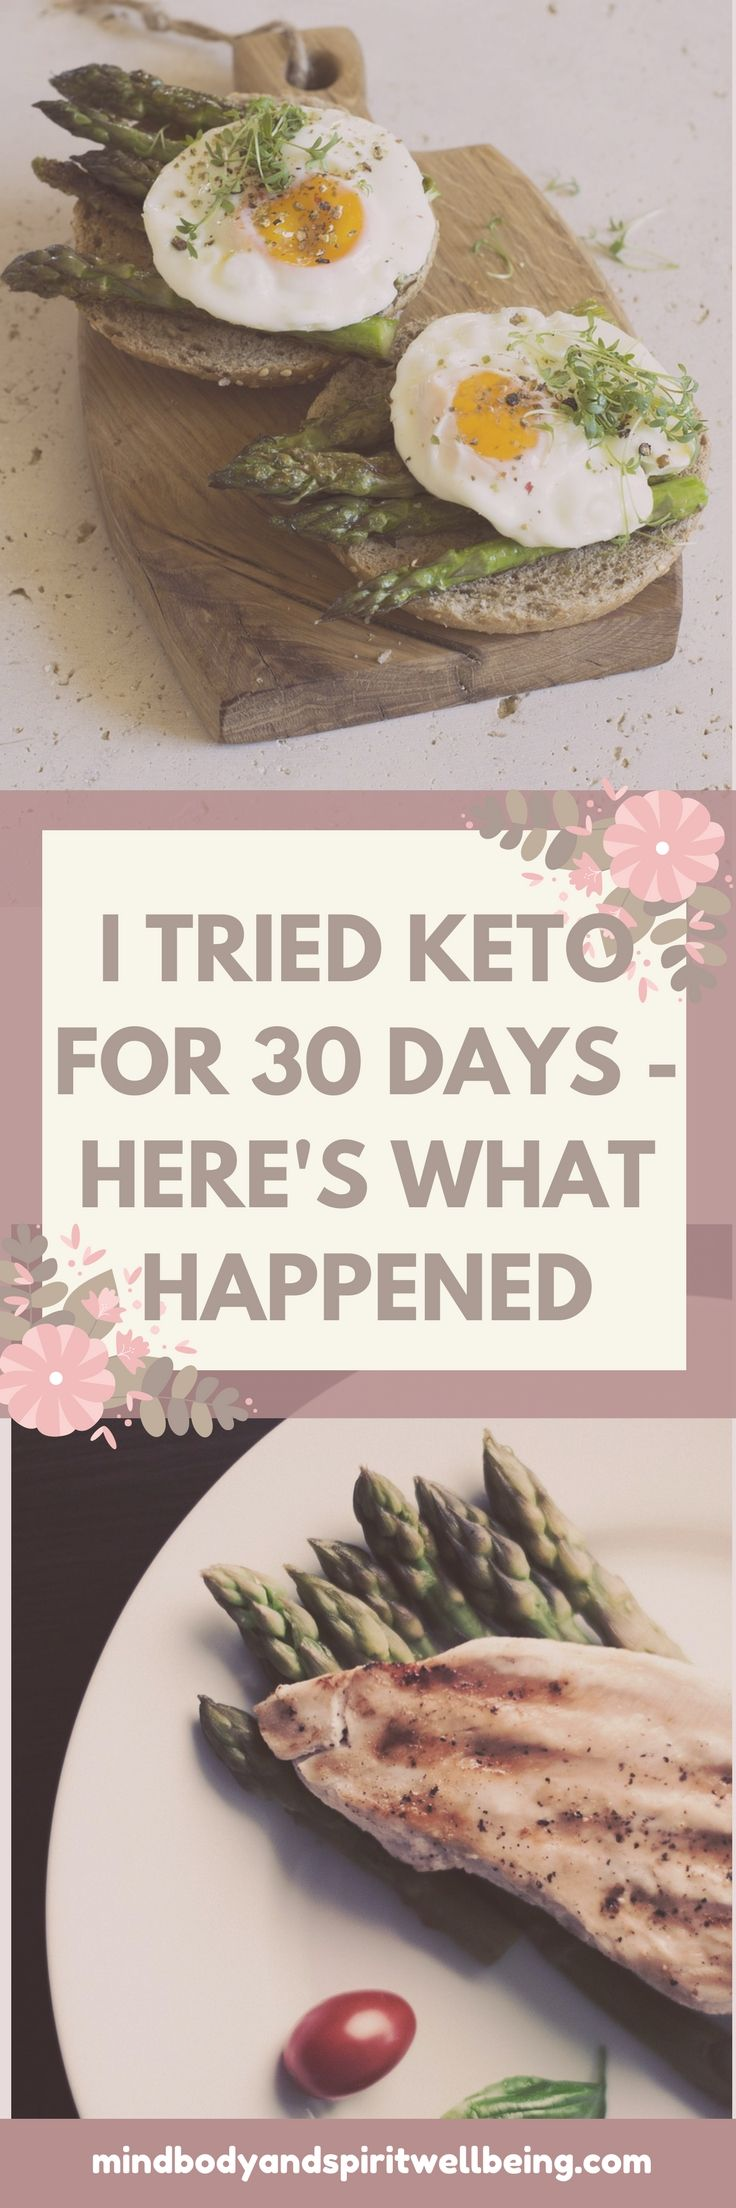 keto, low carb, lchf, hflc, weight loss, lose weight, ketogenic diet, IBS, irritable bowel syndrome, gluten  intolerance, flatulence, hormonal imbalance, PMS, chronic fatigue, adrenal fatigue, insulin resistance, blood sugar, diabetes, varicose veins